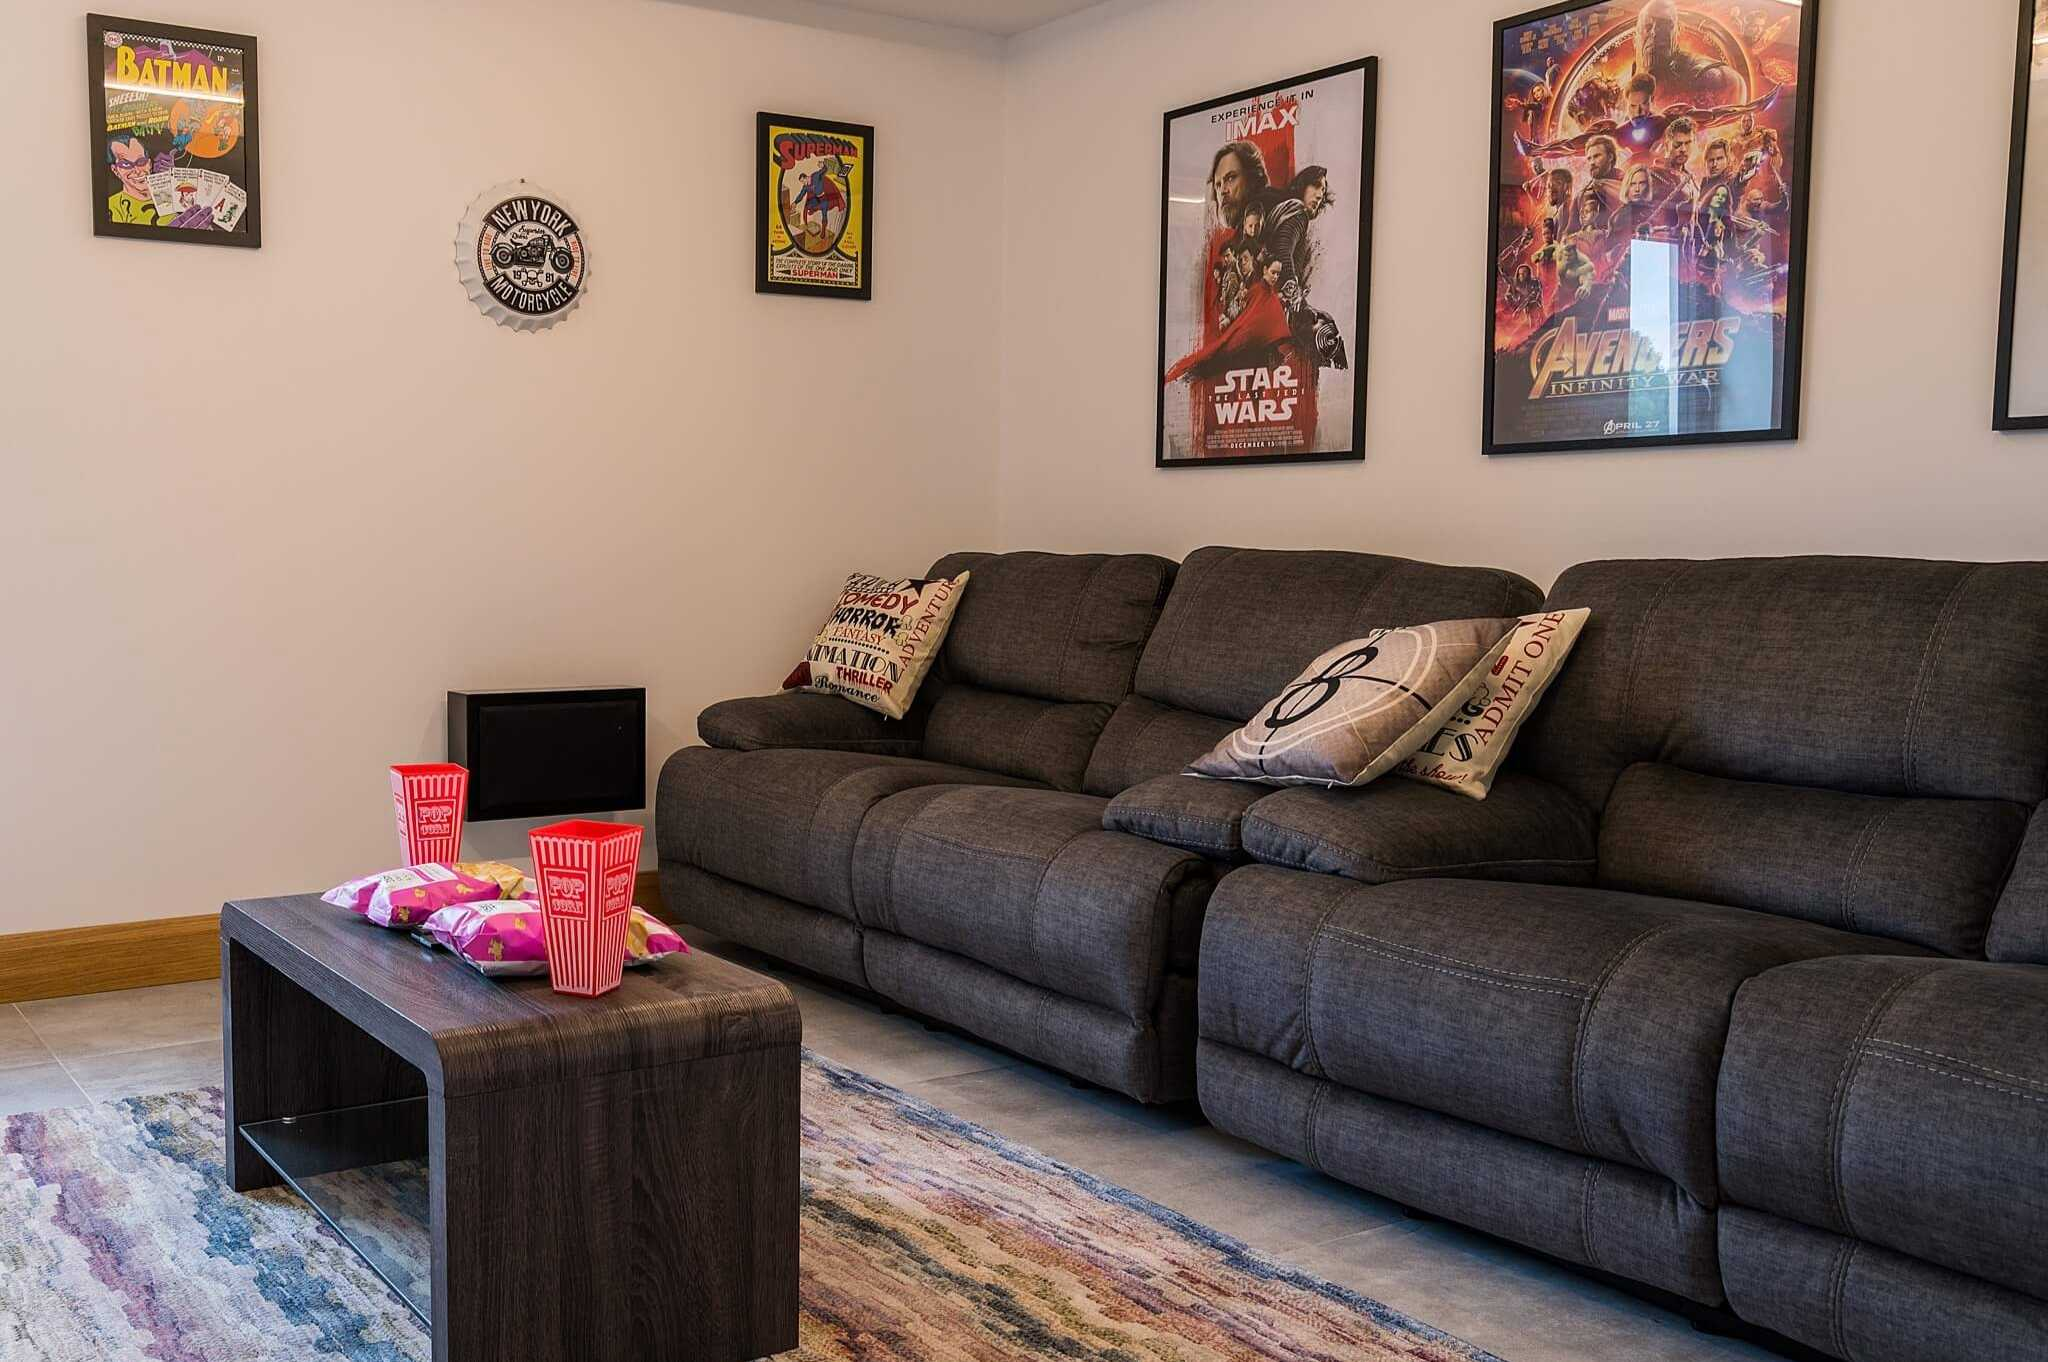 home cinema room with sofas and film posters